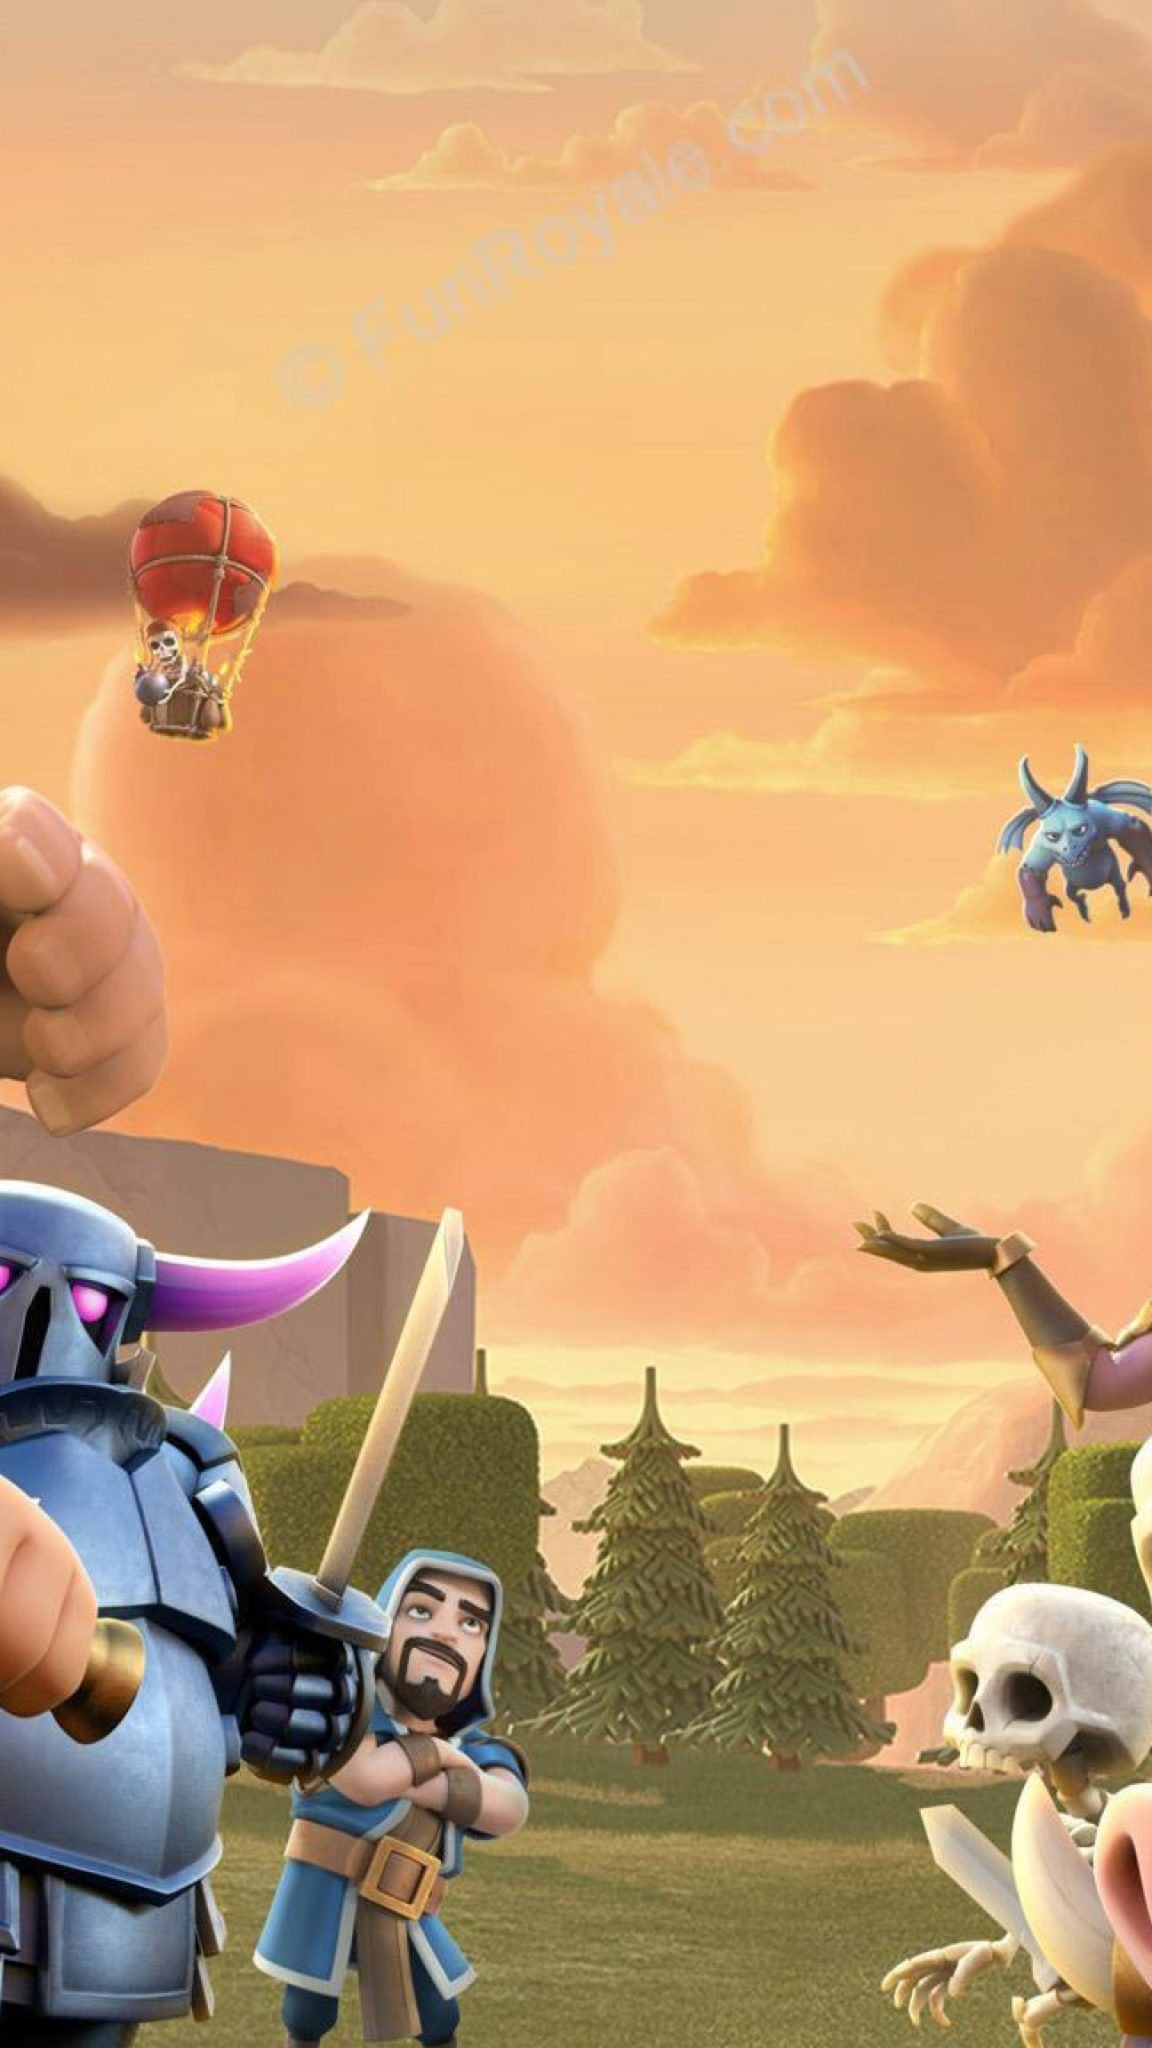 Clash Of Clans Wallpapers Iphone X - Clash Royale Fondos Hd , HD Wallpaper & Backgrounds